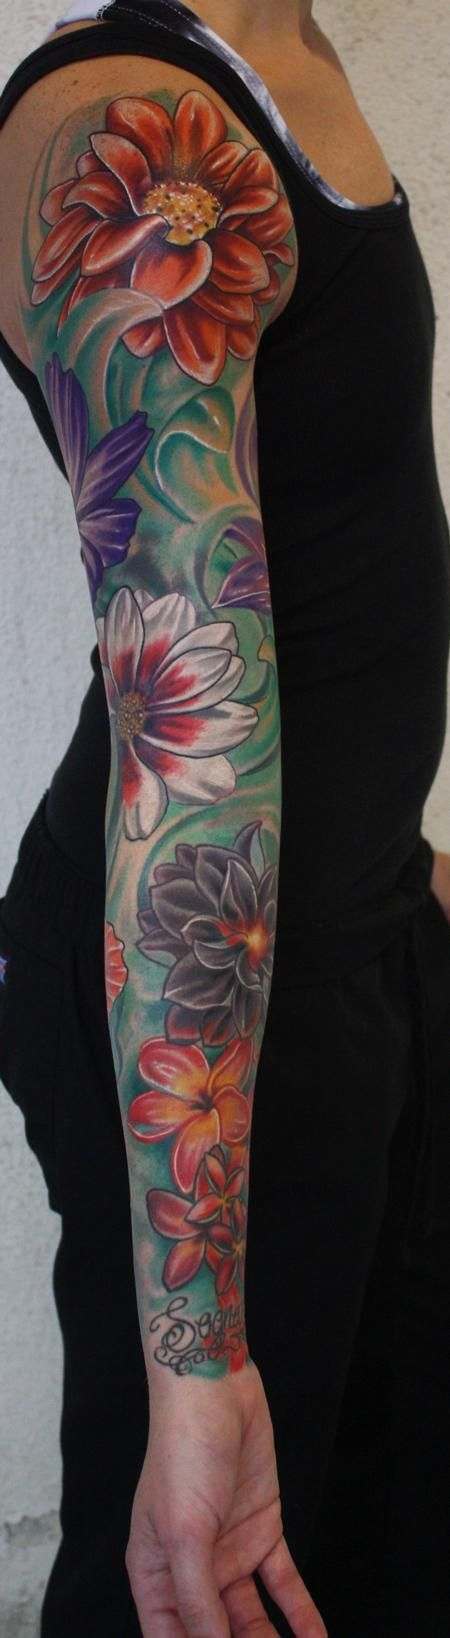 color flower sleeve tattoo : Tattoos :